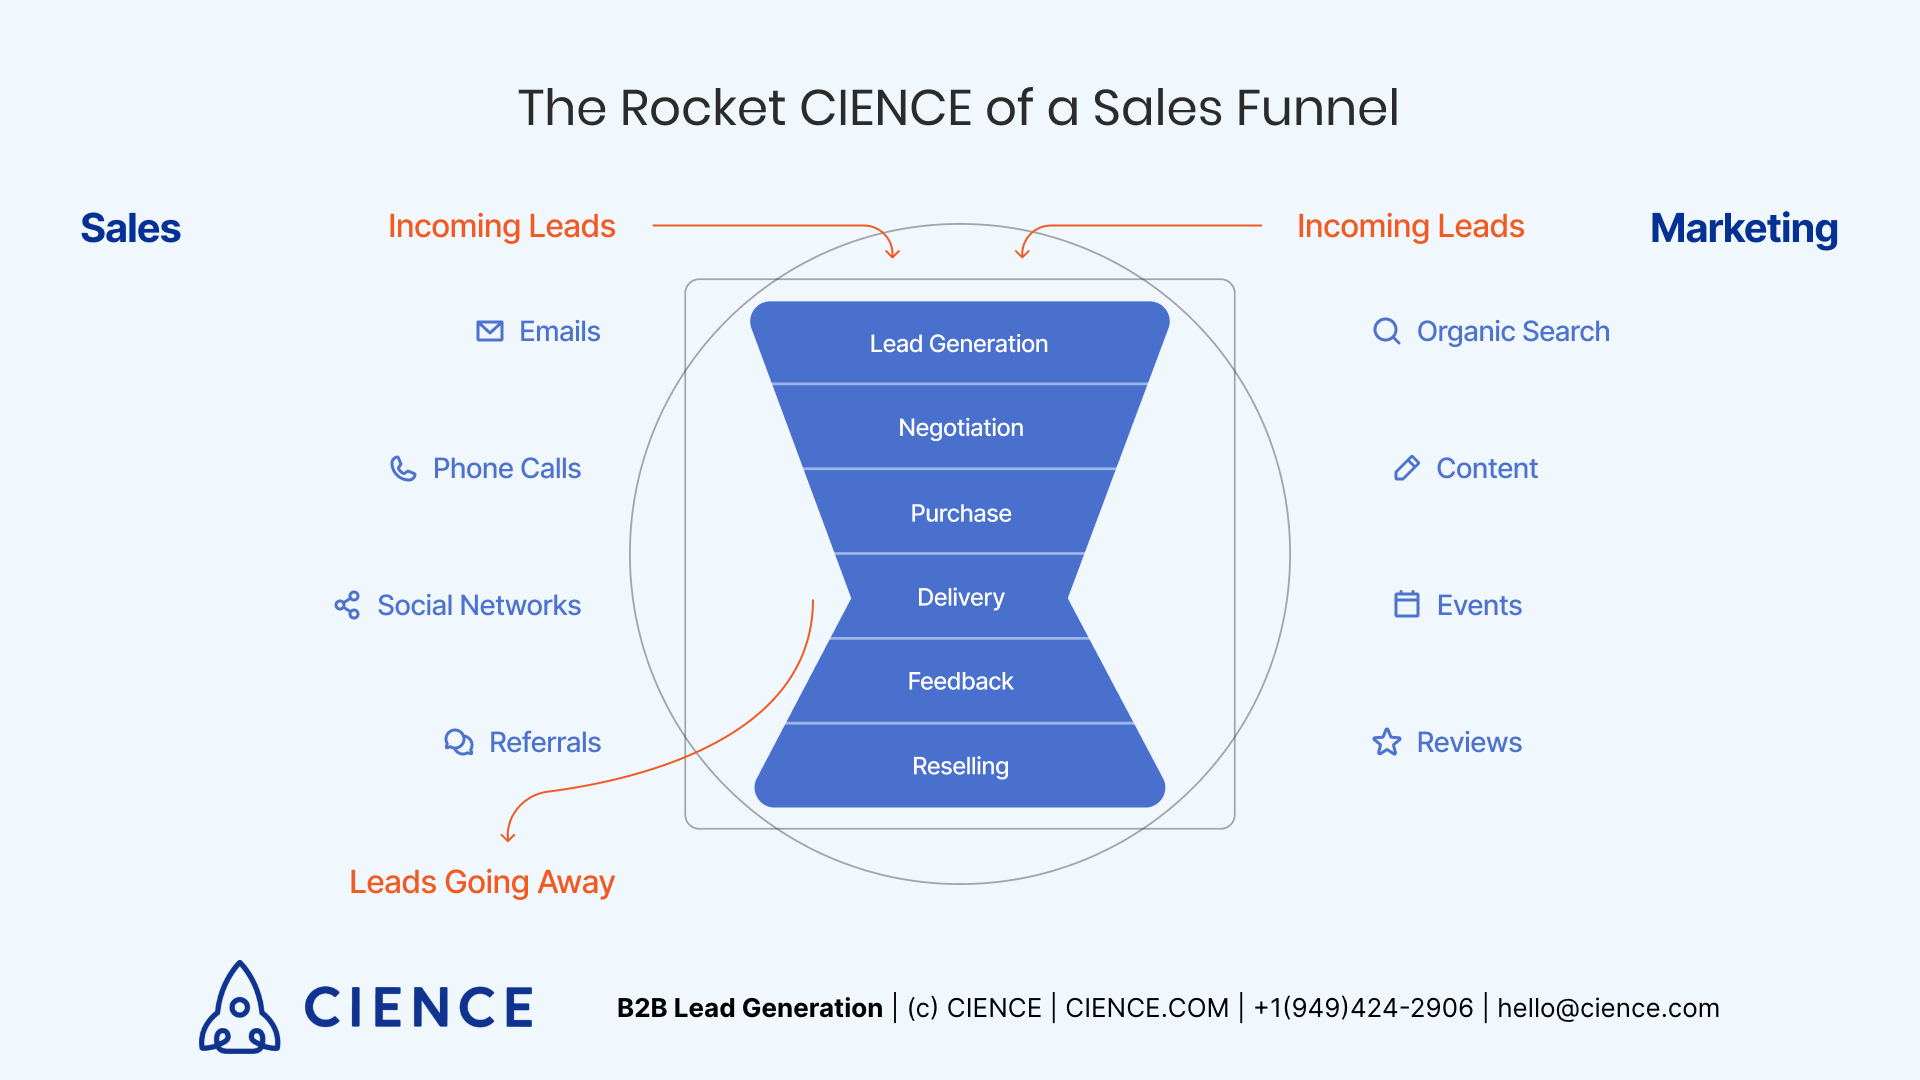 The Rocket CIENCE of a Sales Funnel - Sales Funnel Model for B2B